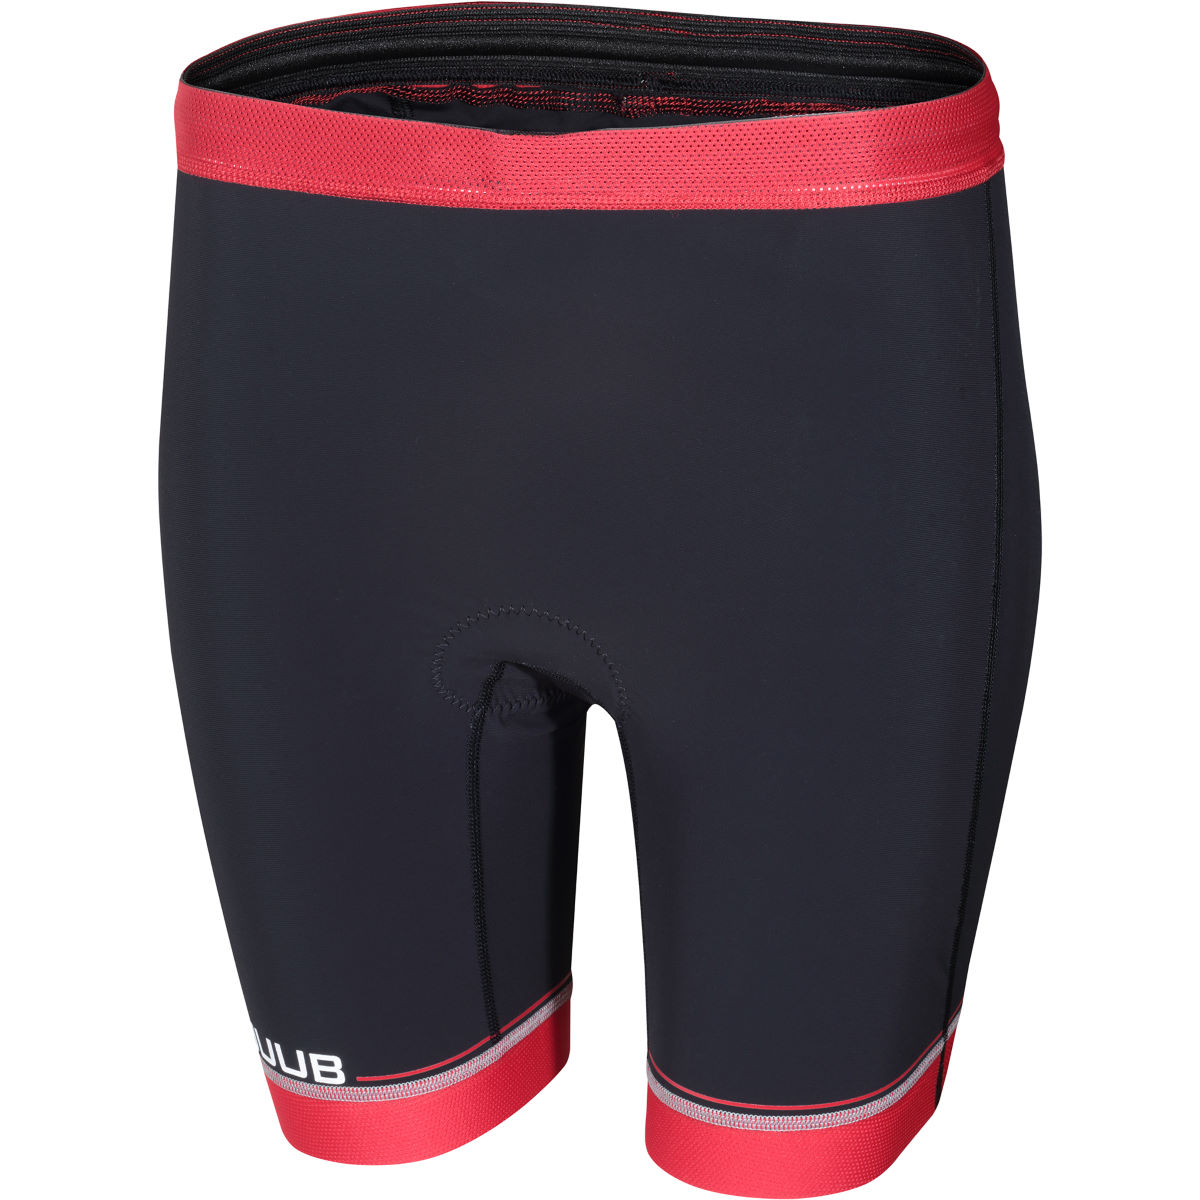 Cuissard court de triathlon Femme HUUB Core - Extra Small Rouge/Noir